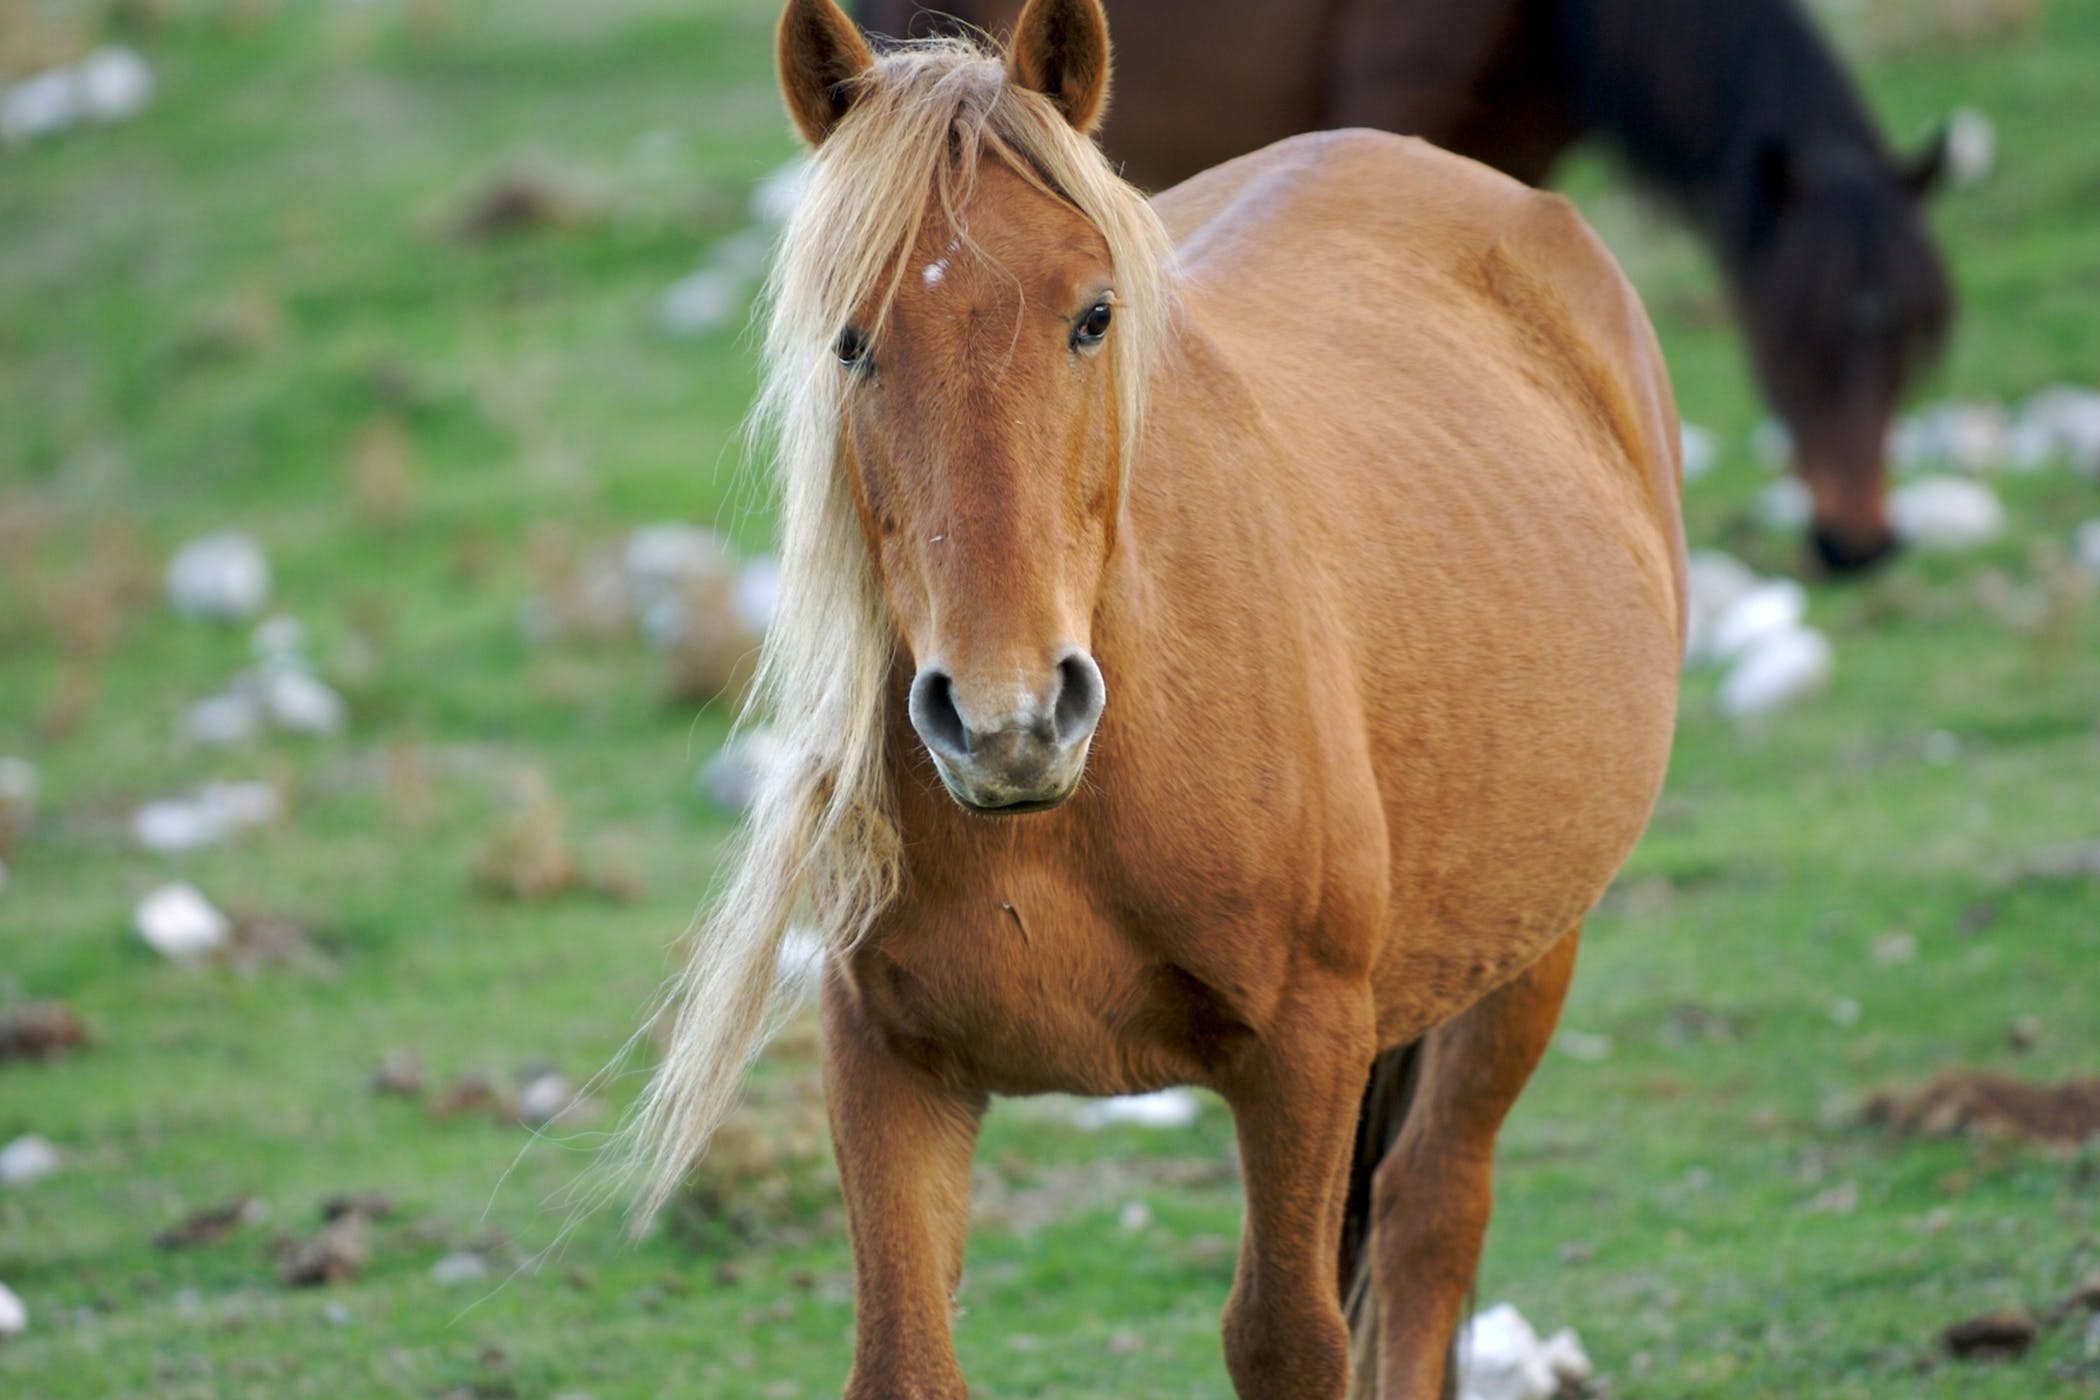 Ovarian Cancer (Mares) in Horses - Symptoms, Causes, Diagnosis